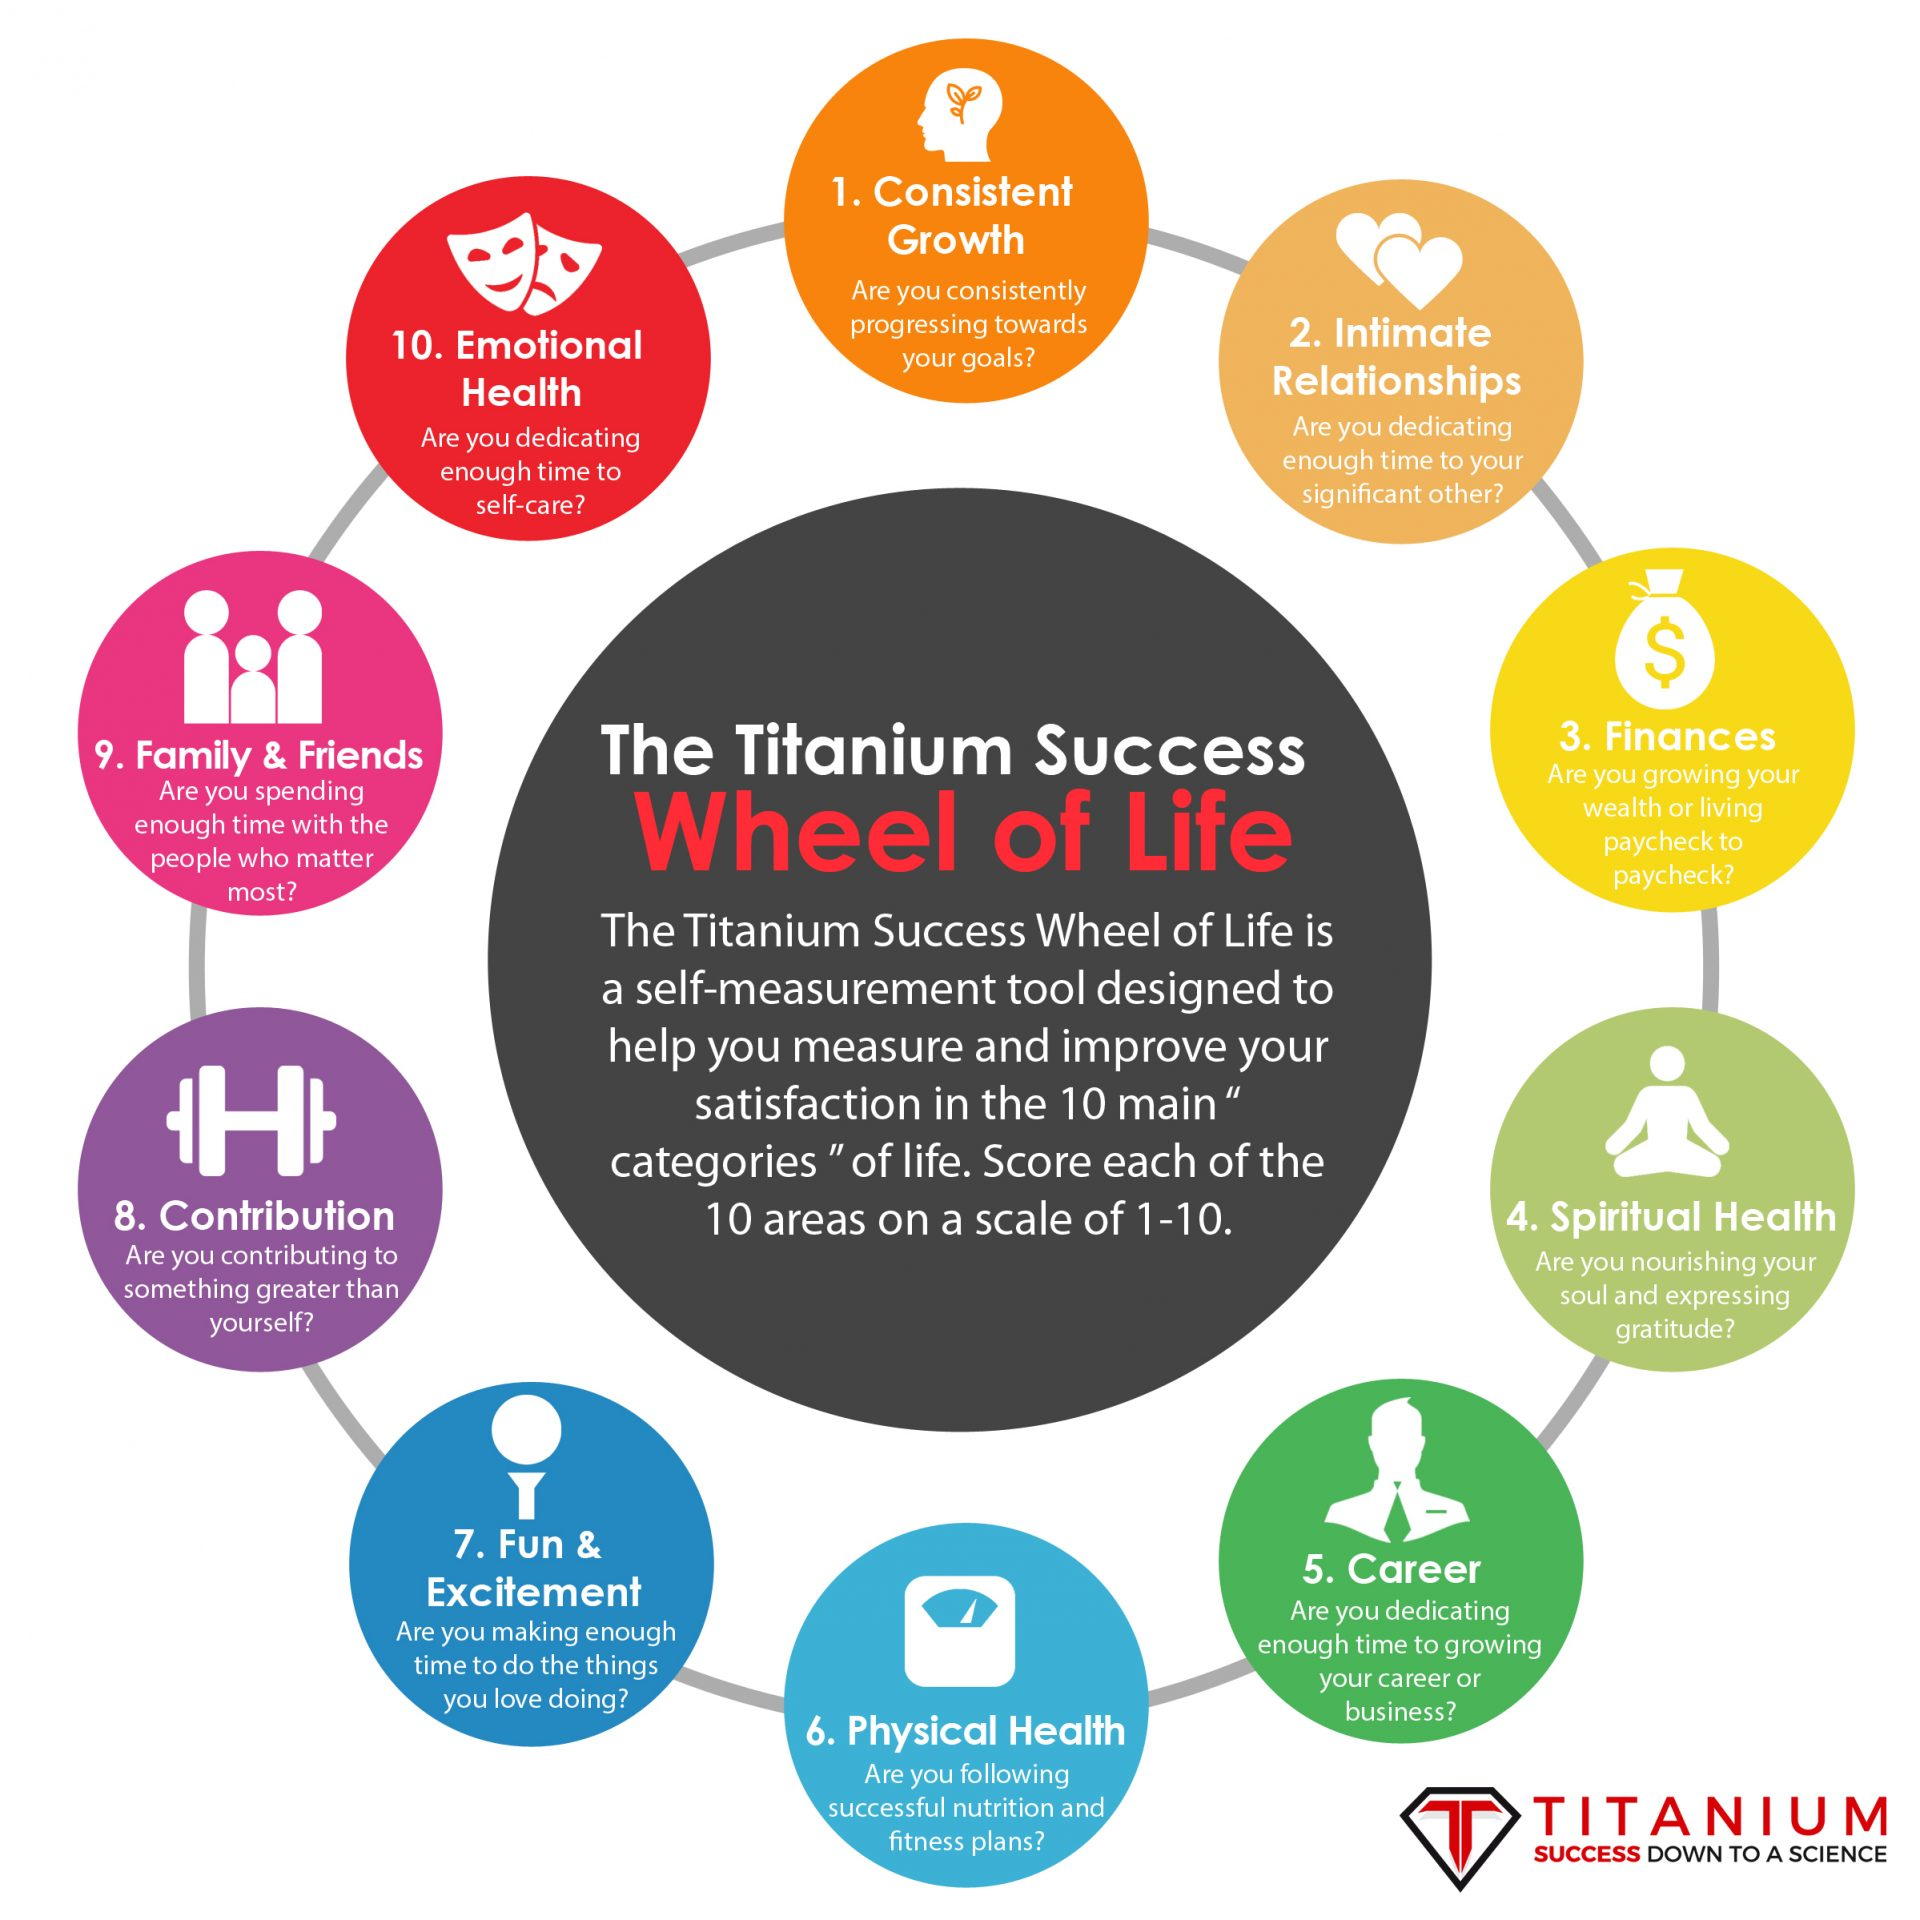 The Titanium Success Wheel of Life Infographic